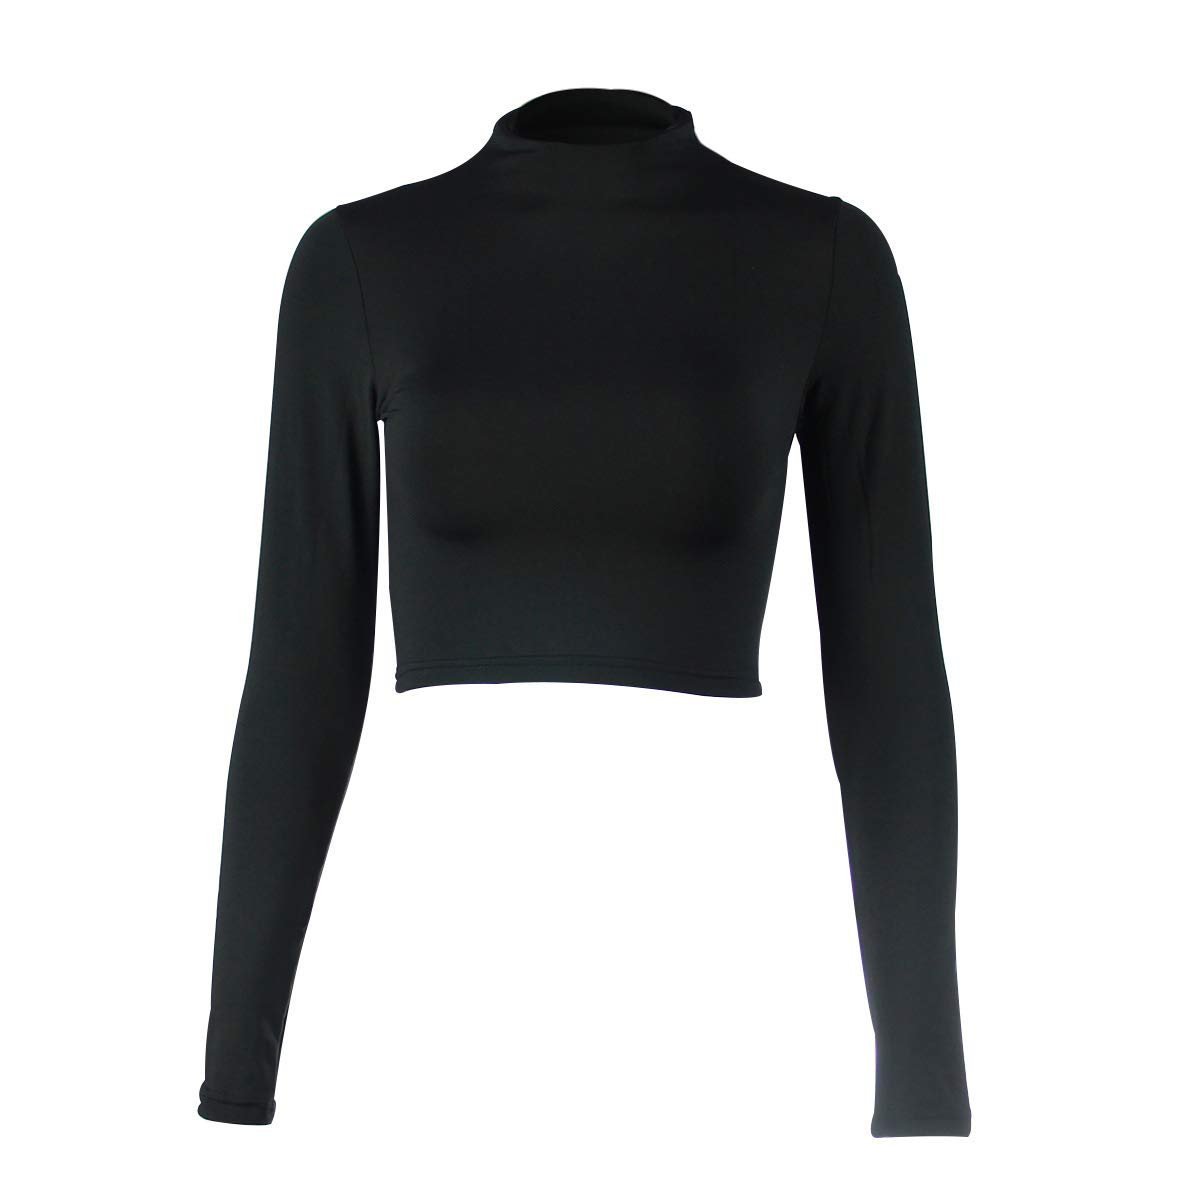 6410e9bb5af21 YLorcce Womens Sexy Slim Fit Long Sleeve Turtleneck Basic Crop Top Tee Tops  at Amazon Women s Clothing store